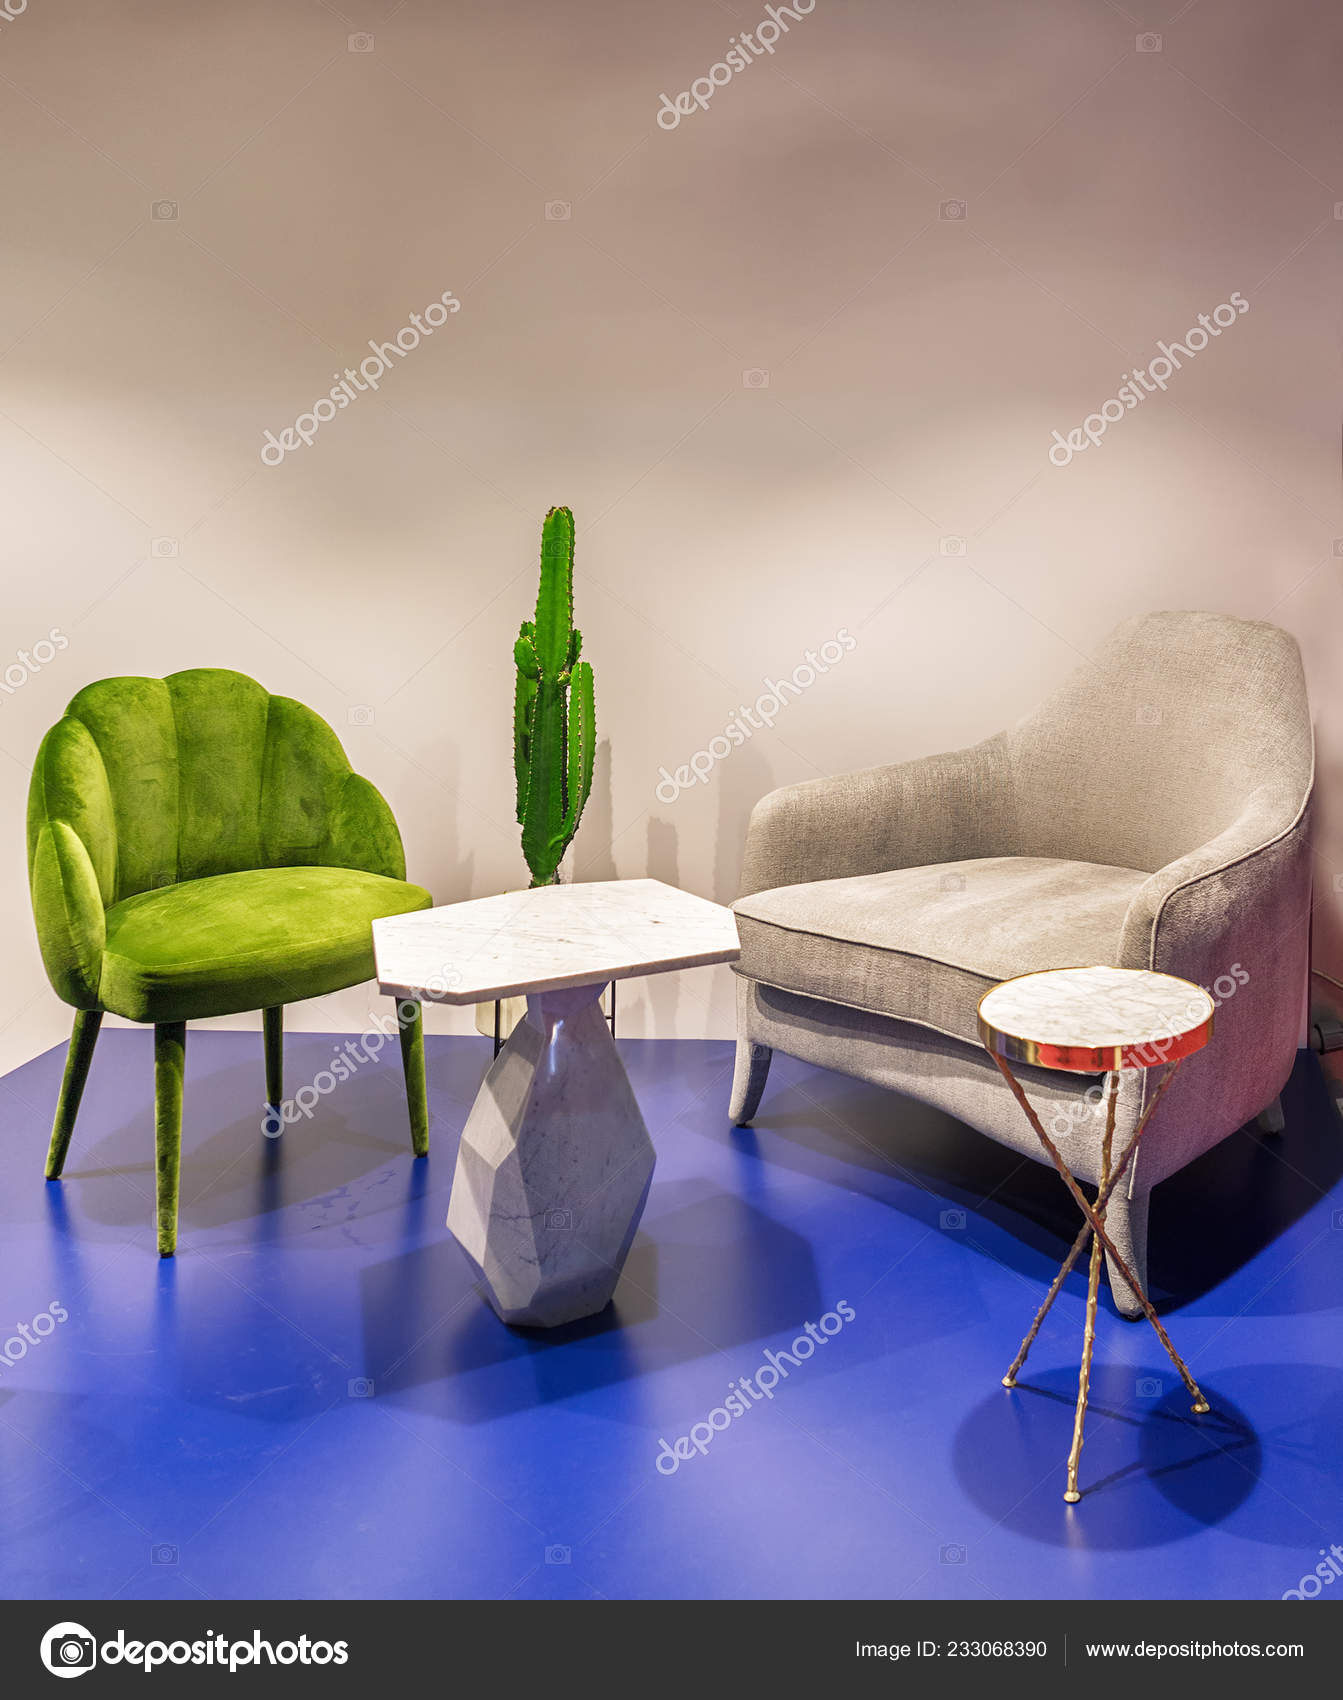 soft chairs stylish coffee tables interior modern living room stock photo image by c fotiy 233068390